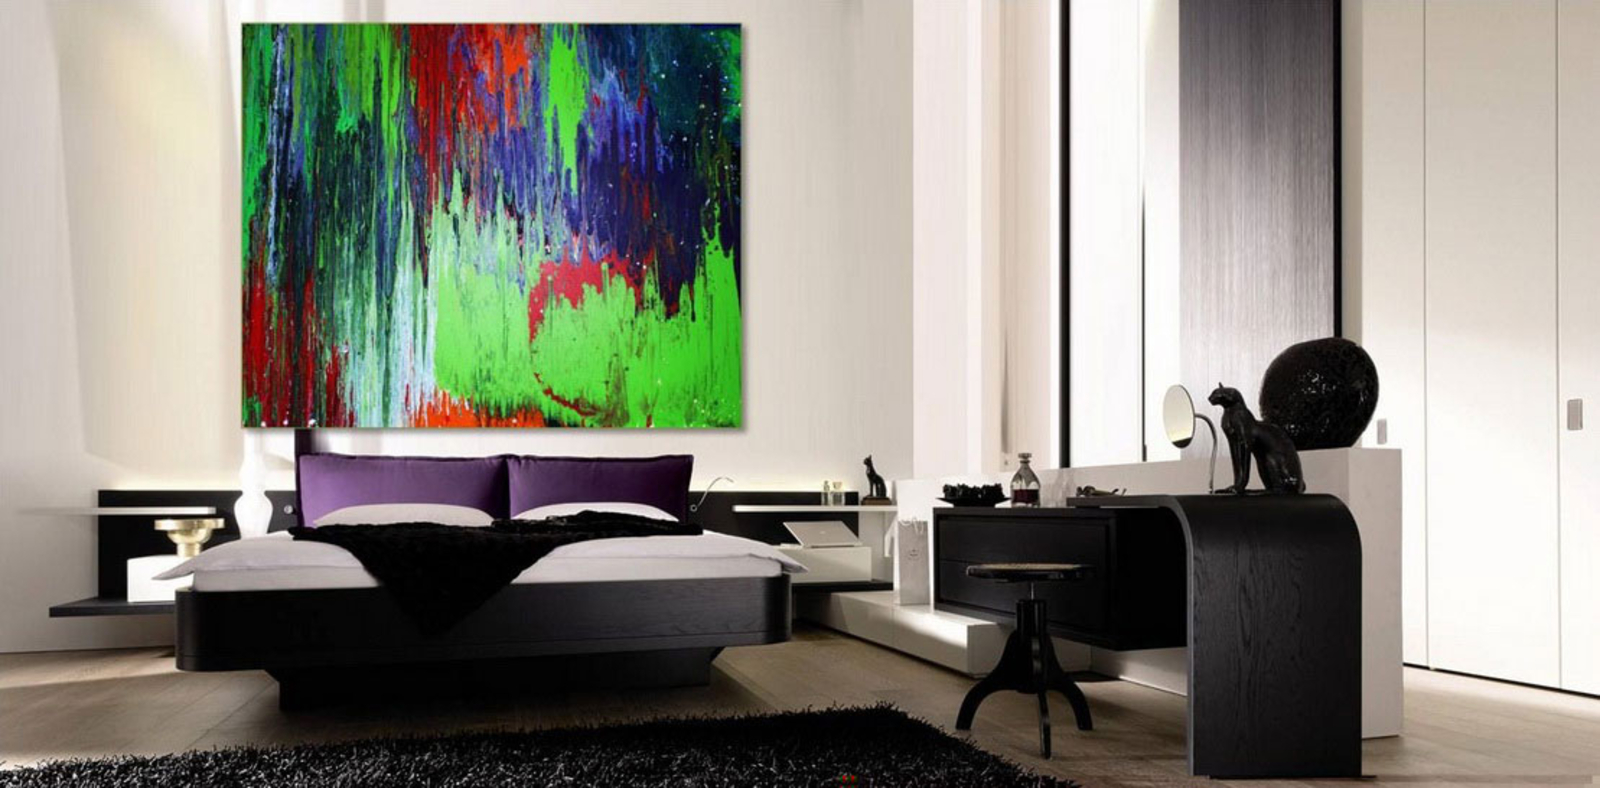 Paint Designs For Living Room: Preserve Artwork: Tips To Take Care